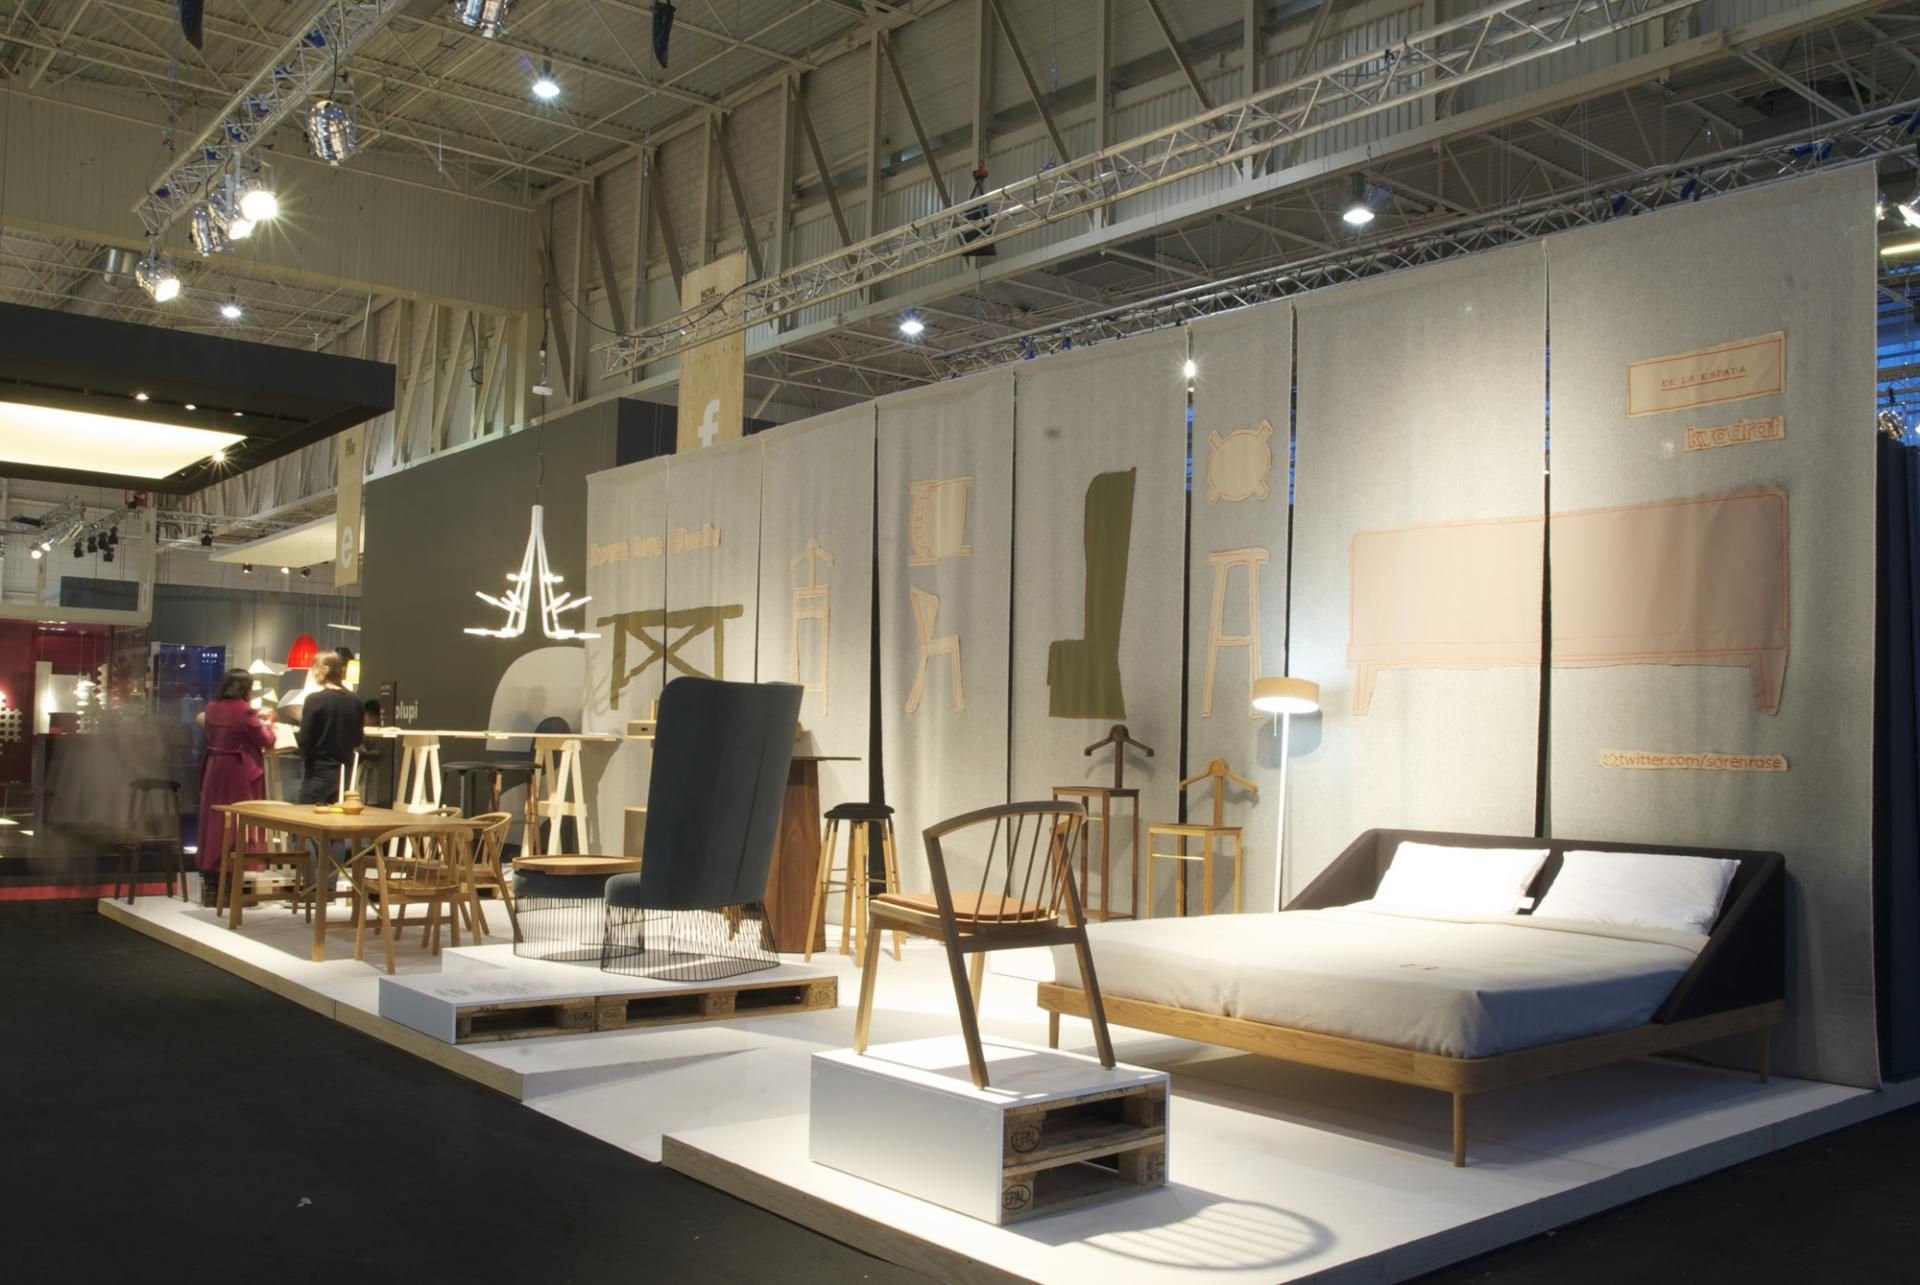 Maison objet asia 2017 - Objet de decoration design ...